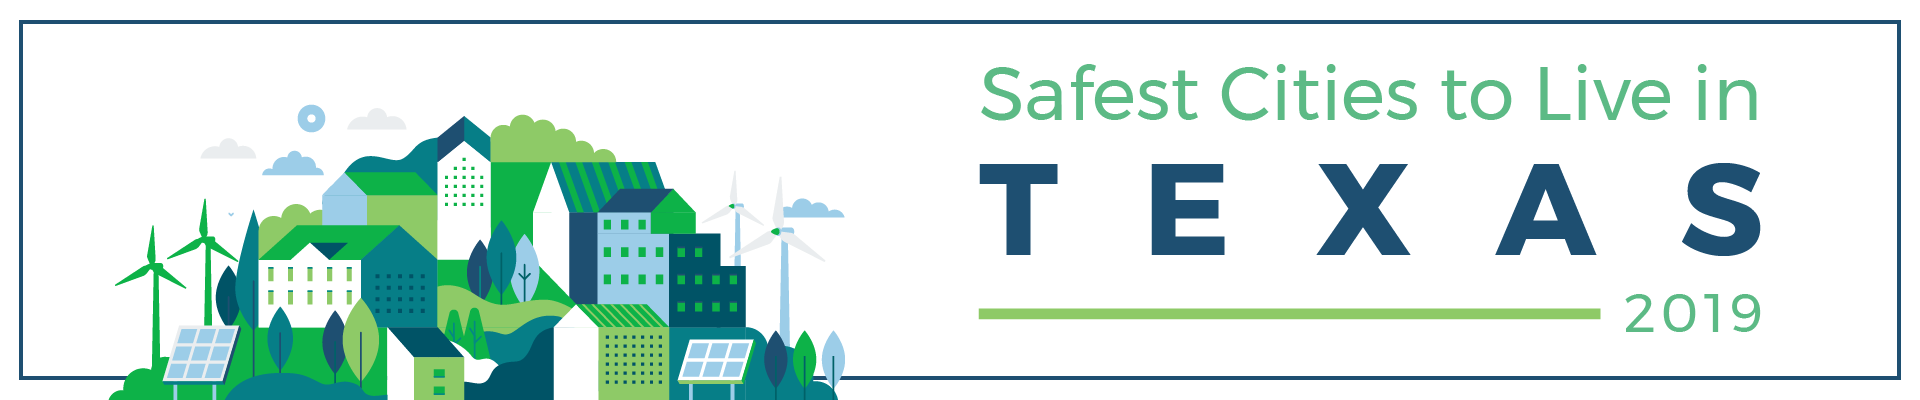 header - safest_cities_texas_2019